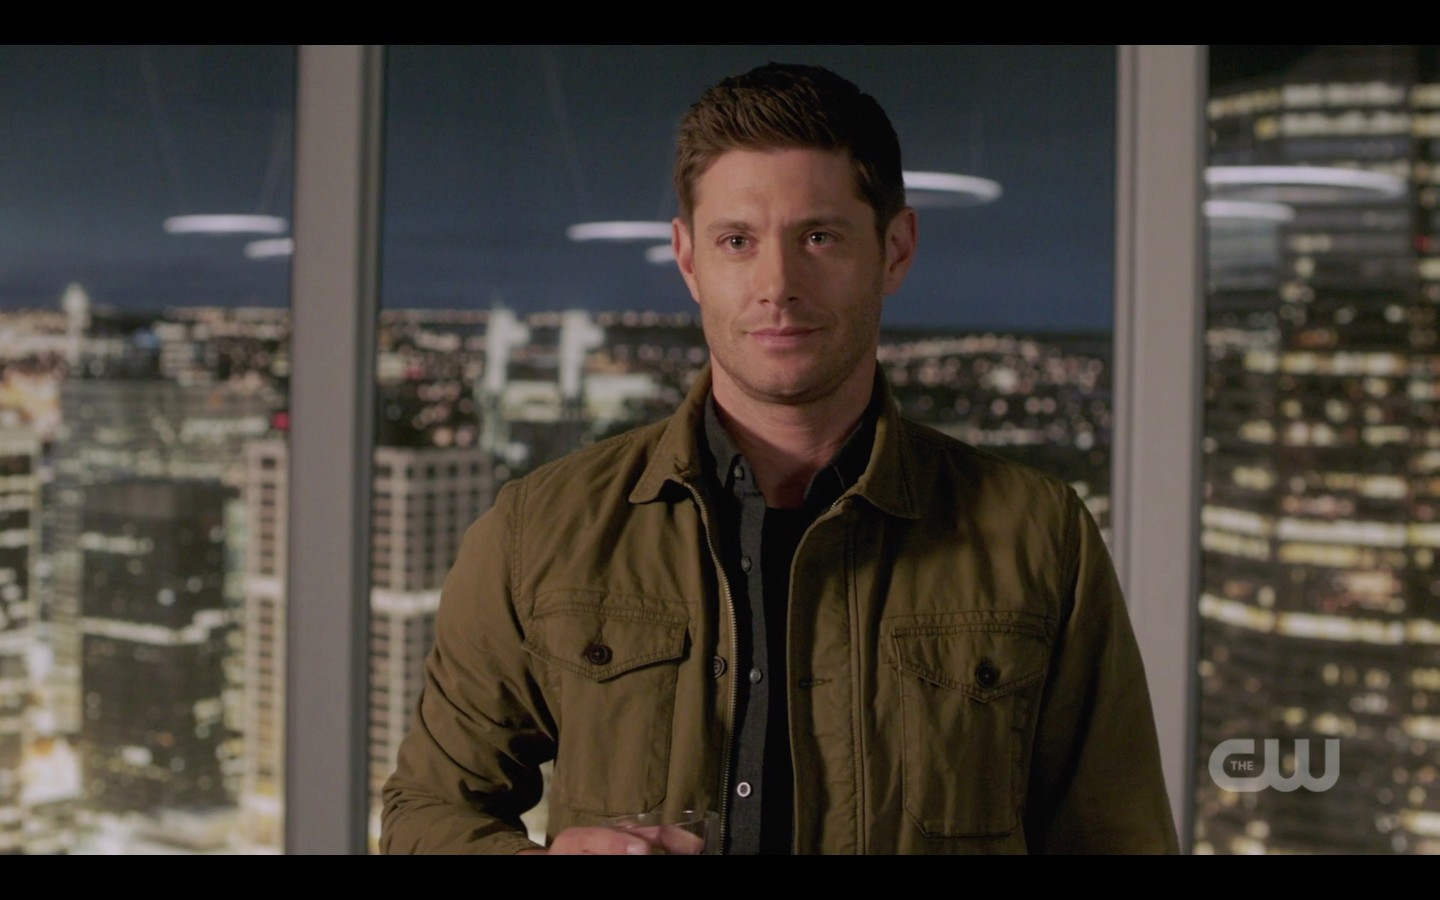 dean winchester watching michael excuses spn 1409 spear